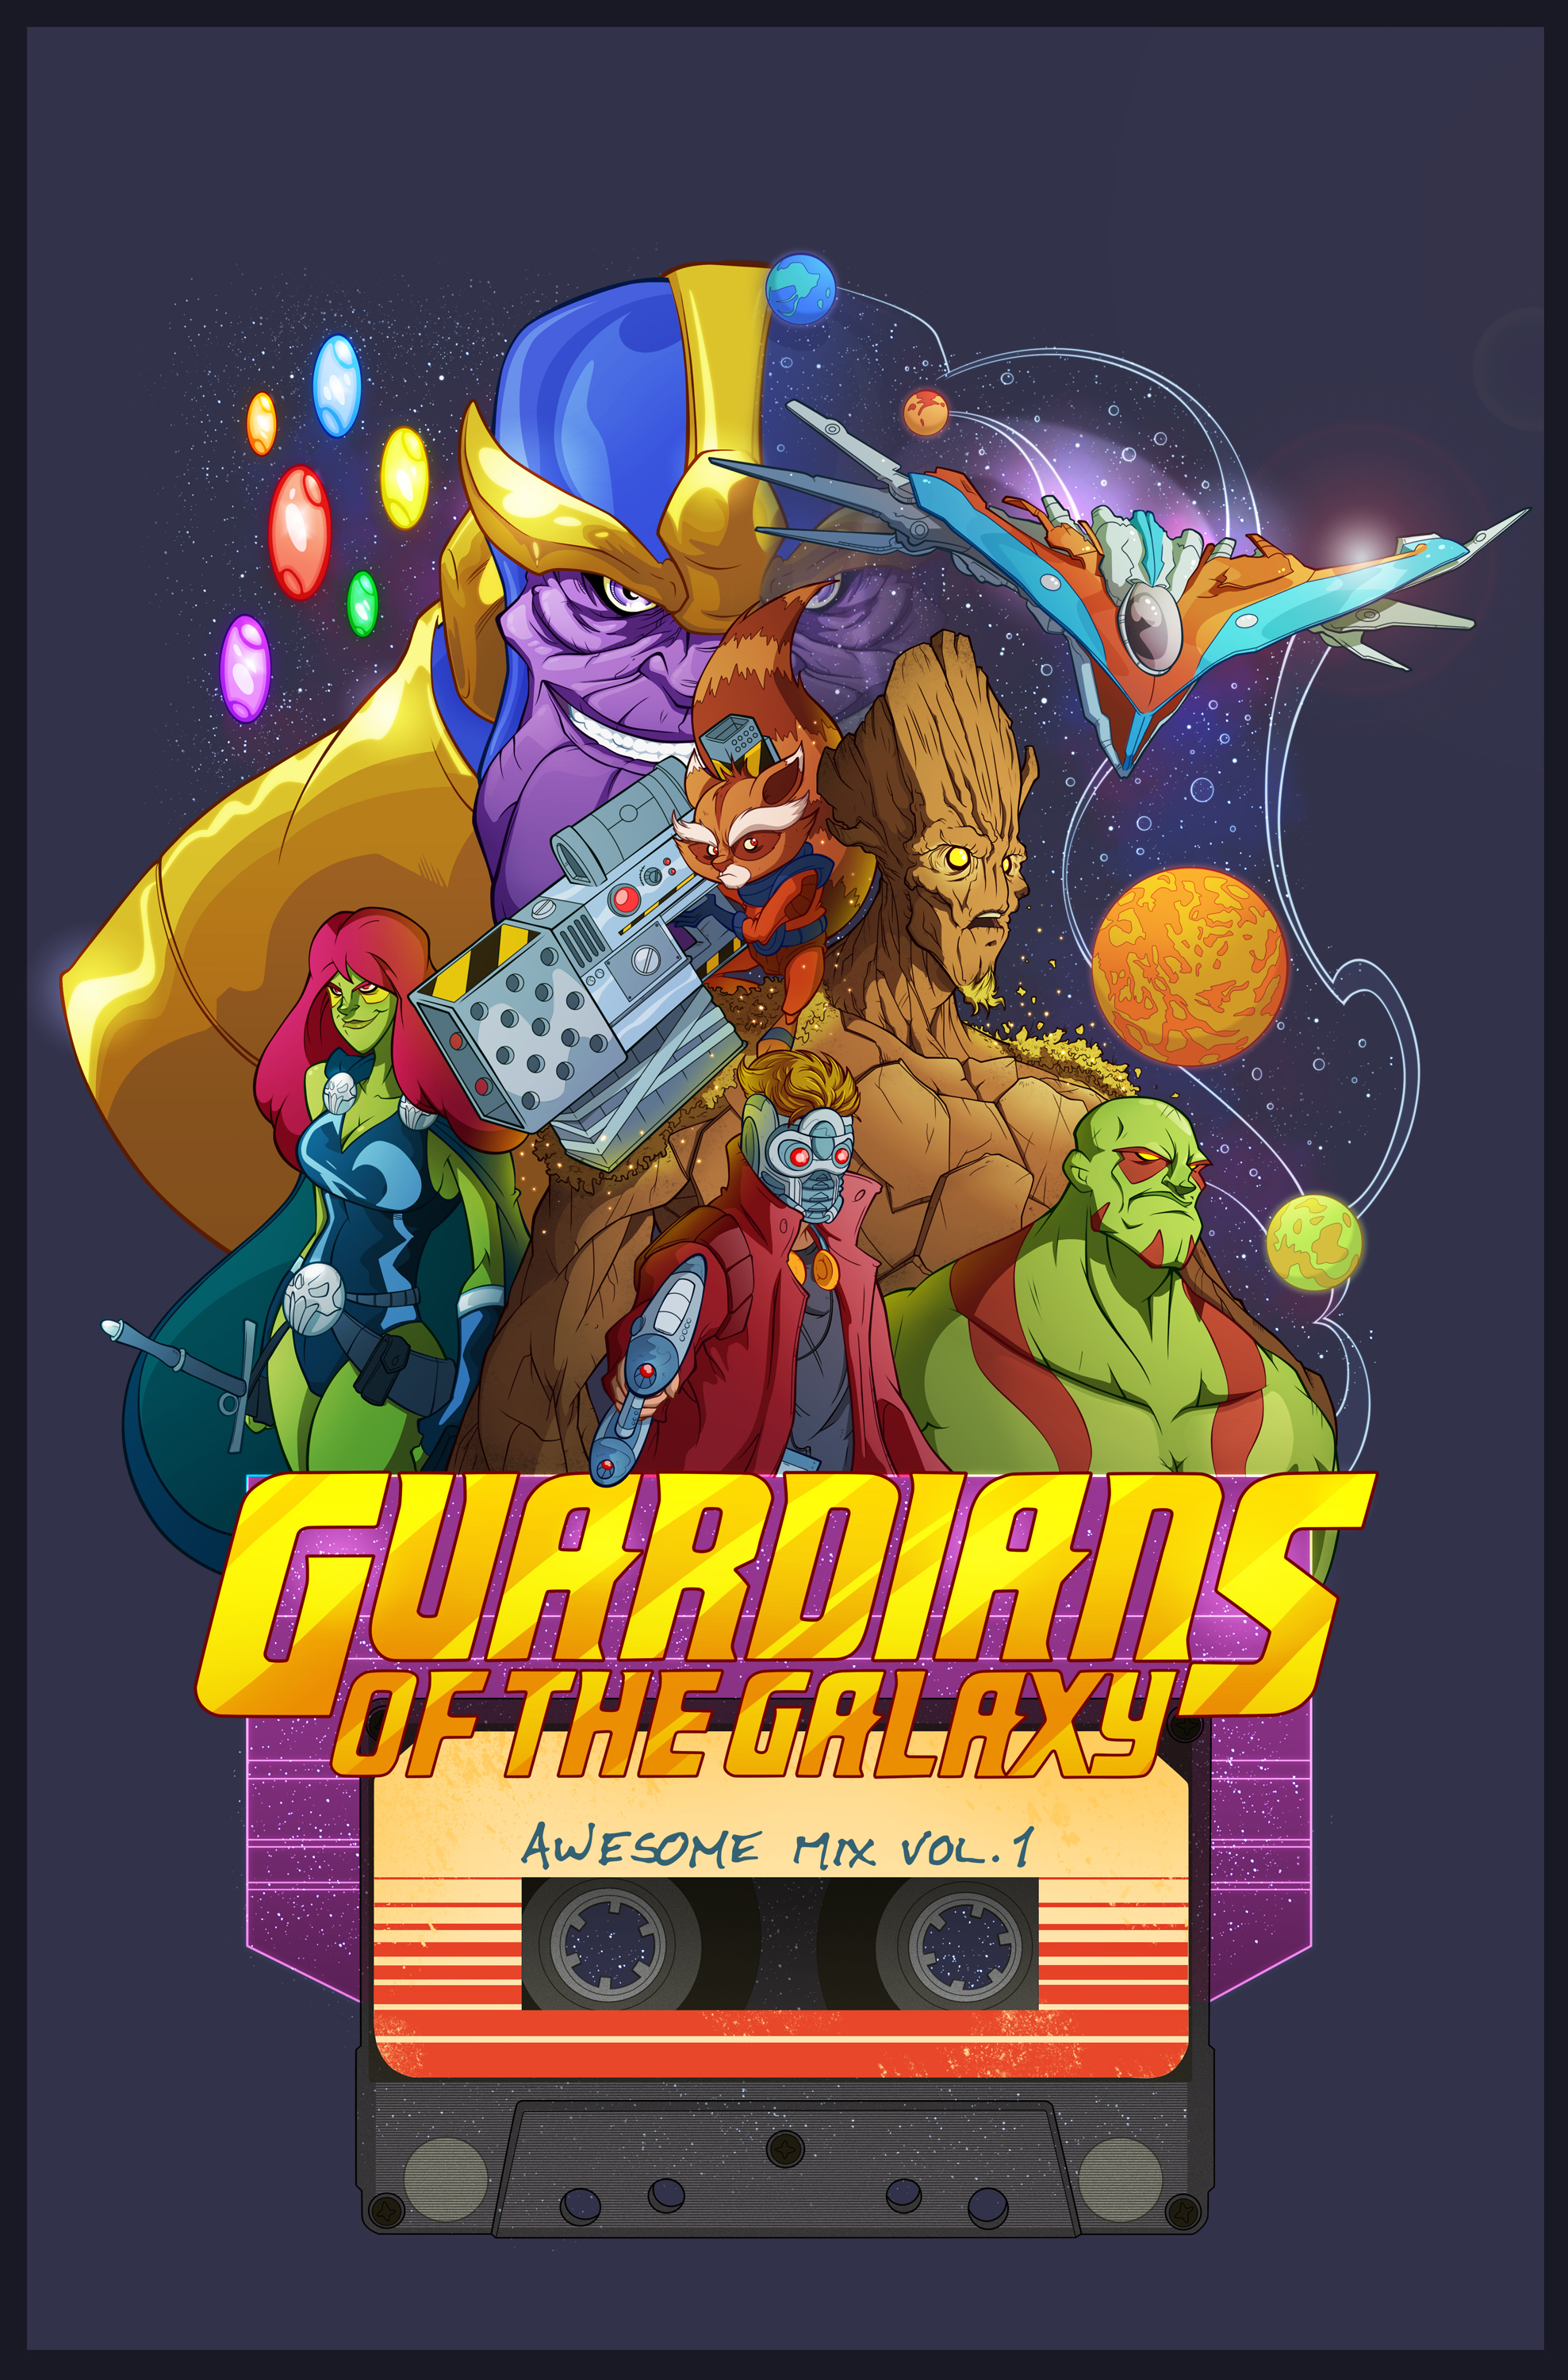 Guardians of the Galaxy col